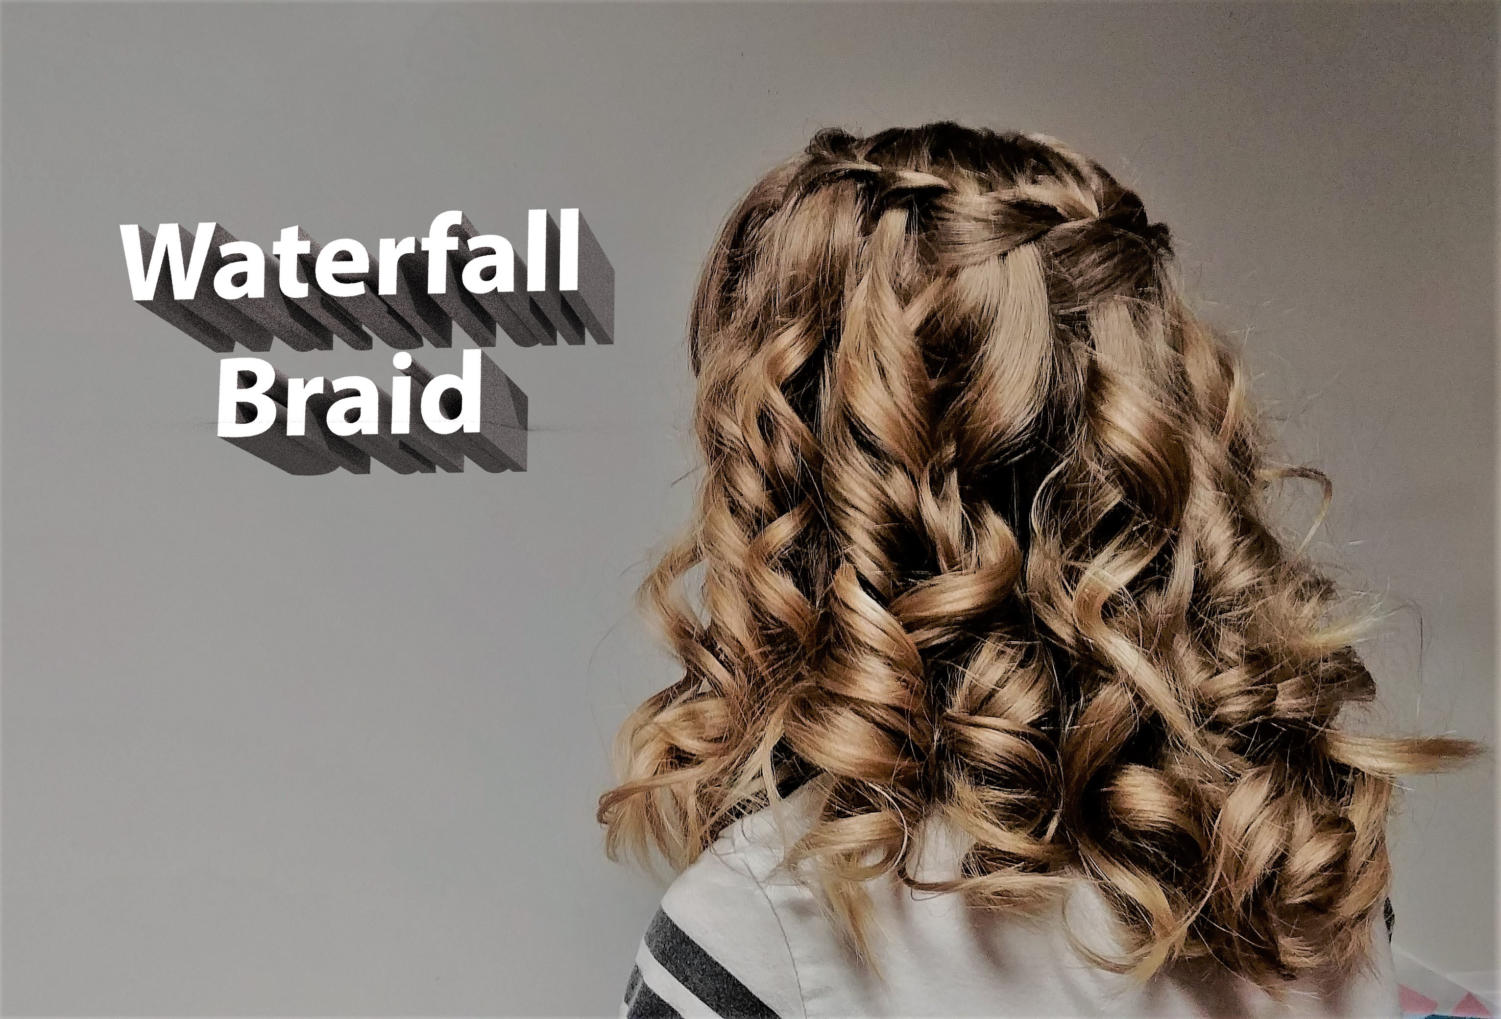 Eight-grader Saffron Eugea shows off her waterfall braid as a representation of the article she wrote about how to do this type of specialty braid.